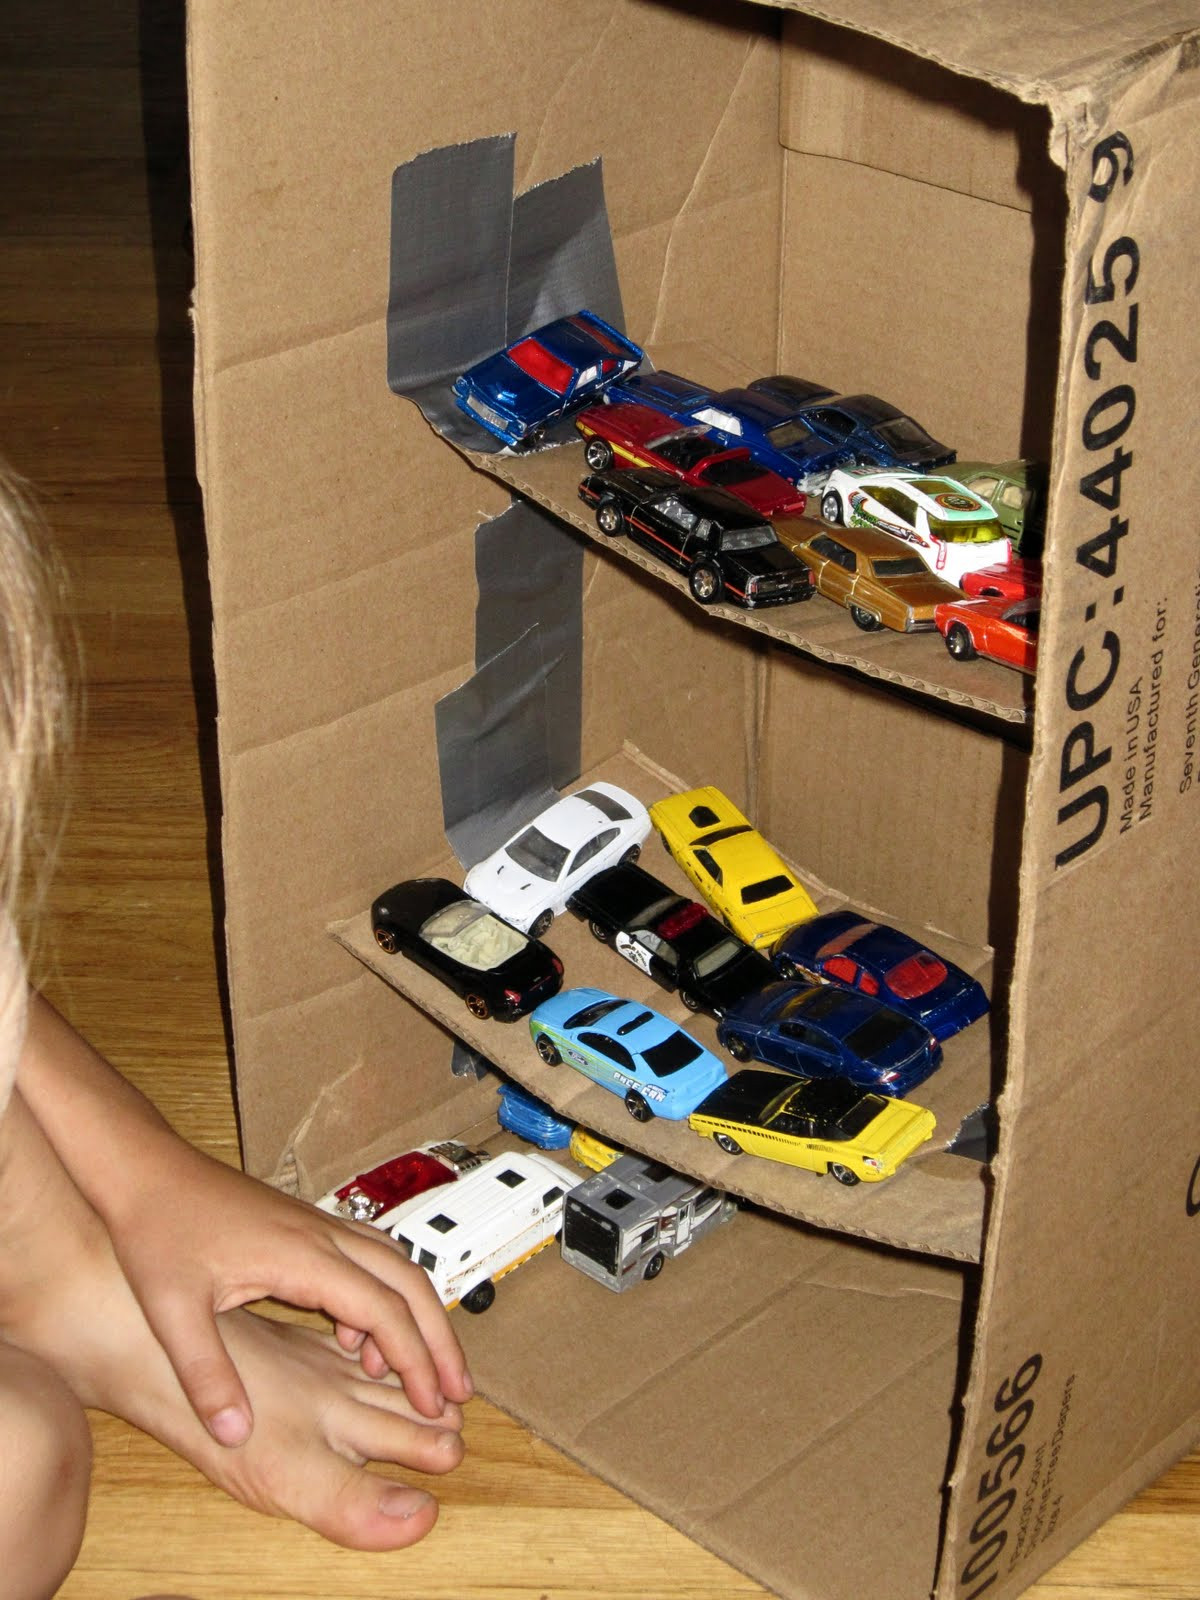 Best ideas about DIY Toy Car Garage . Save or Pin Homemade Toy Car Parking Garage Now.